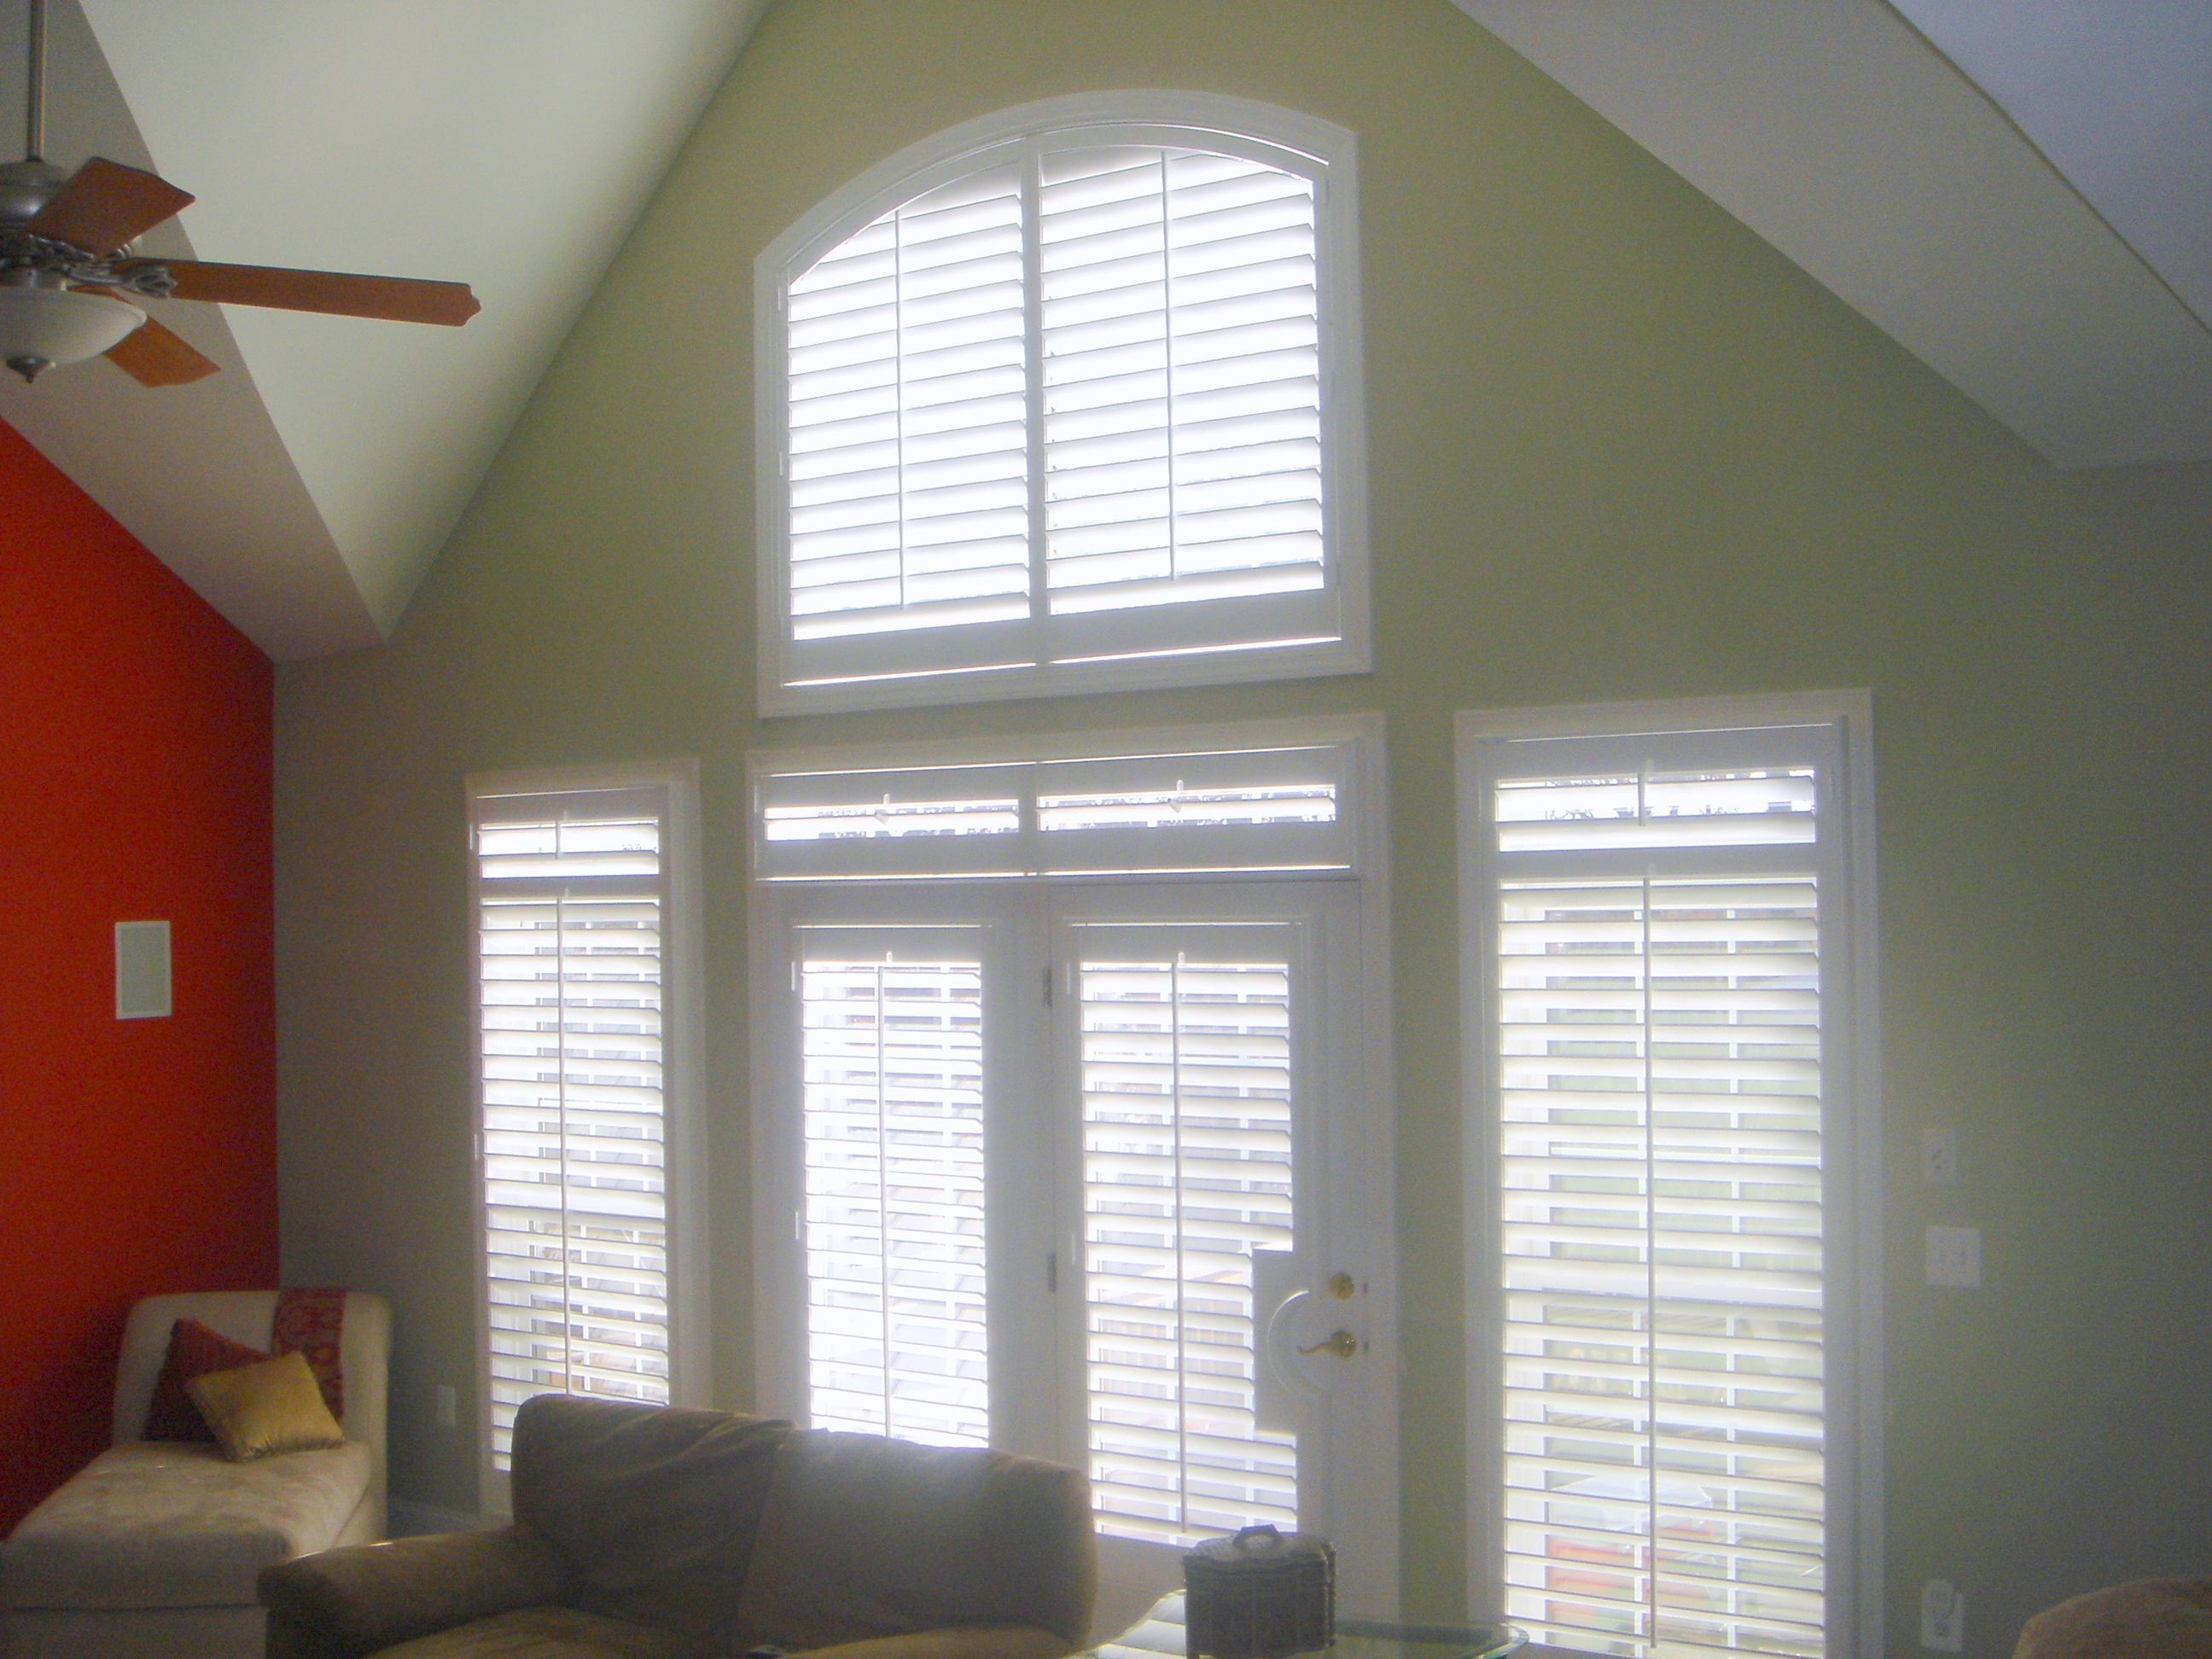 Arch French Doors And Windows With Transoms All Covered With Interior Plantation Shutters